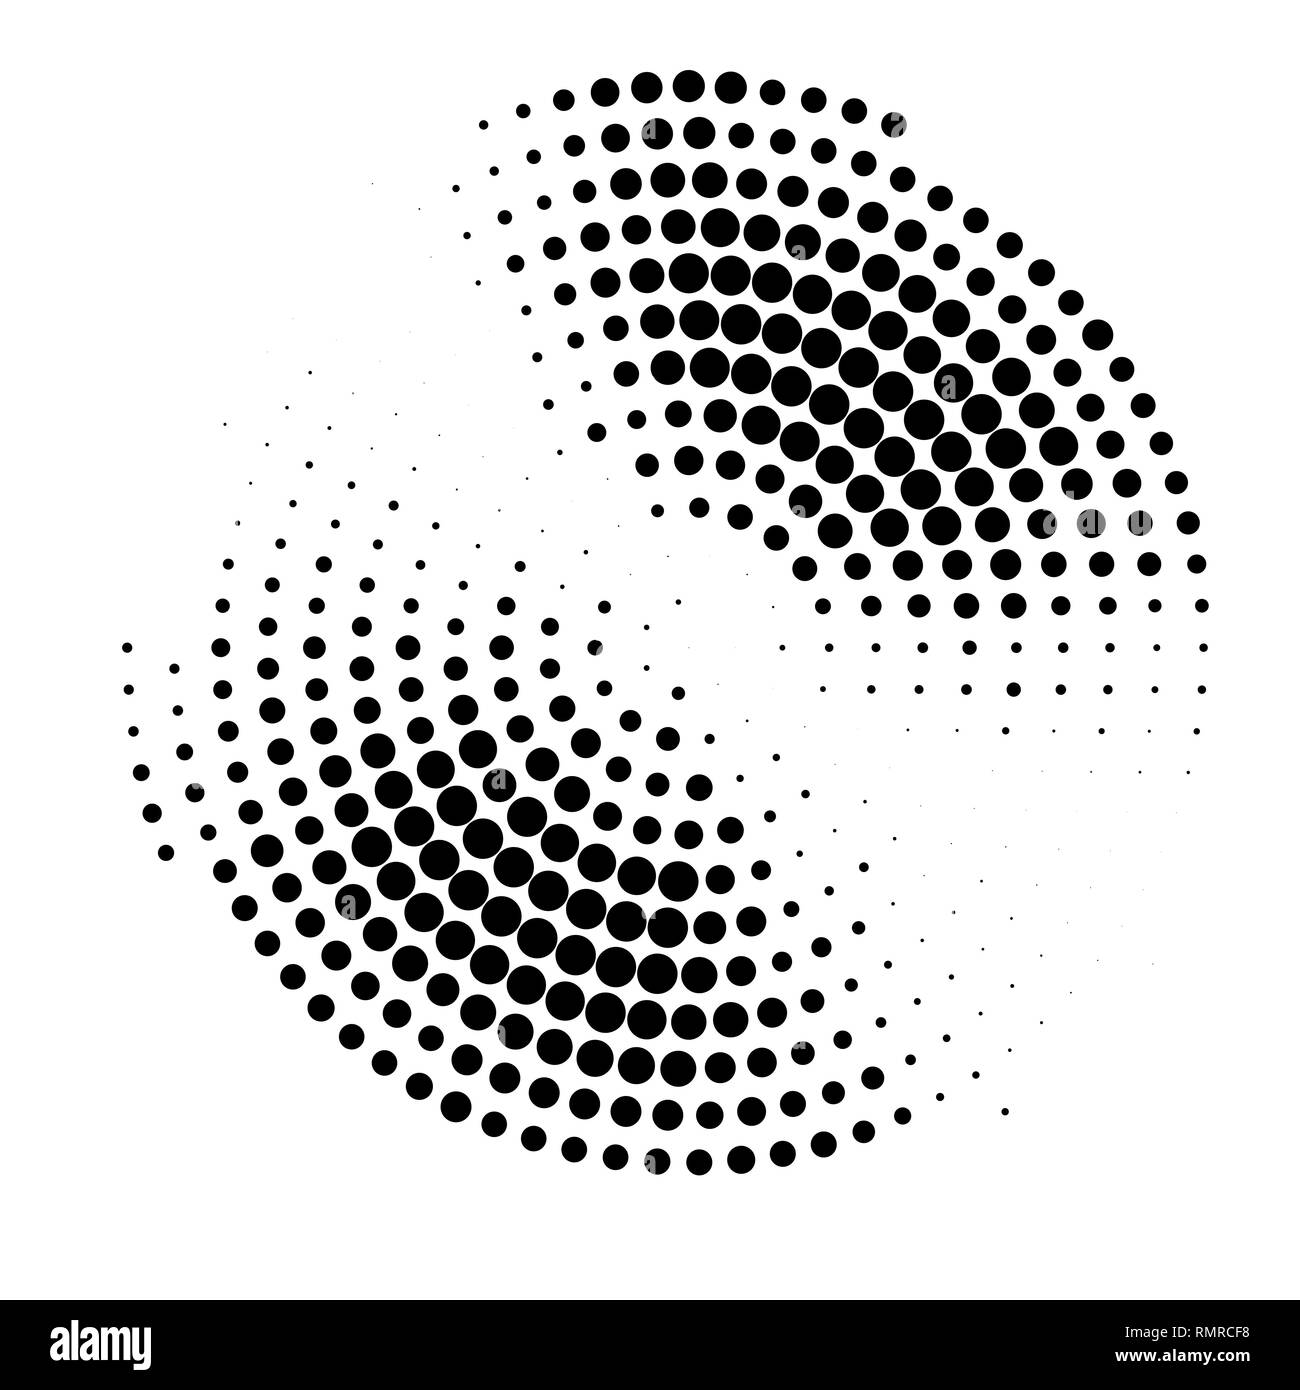 abstract halftone circle gradation background - Stock Image